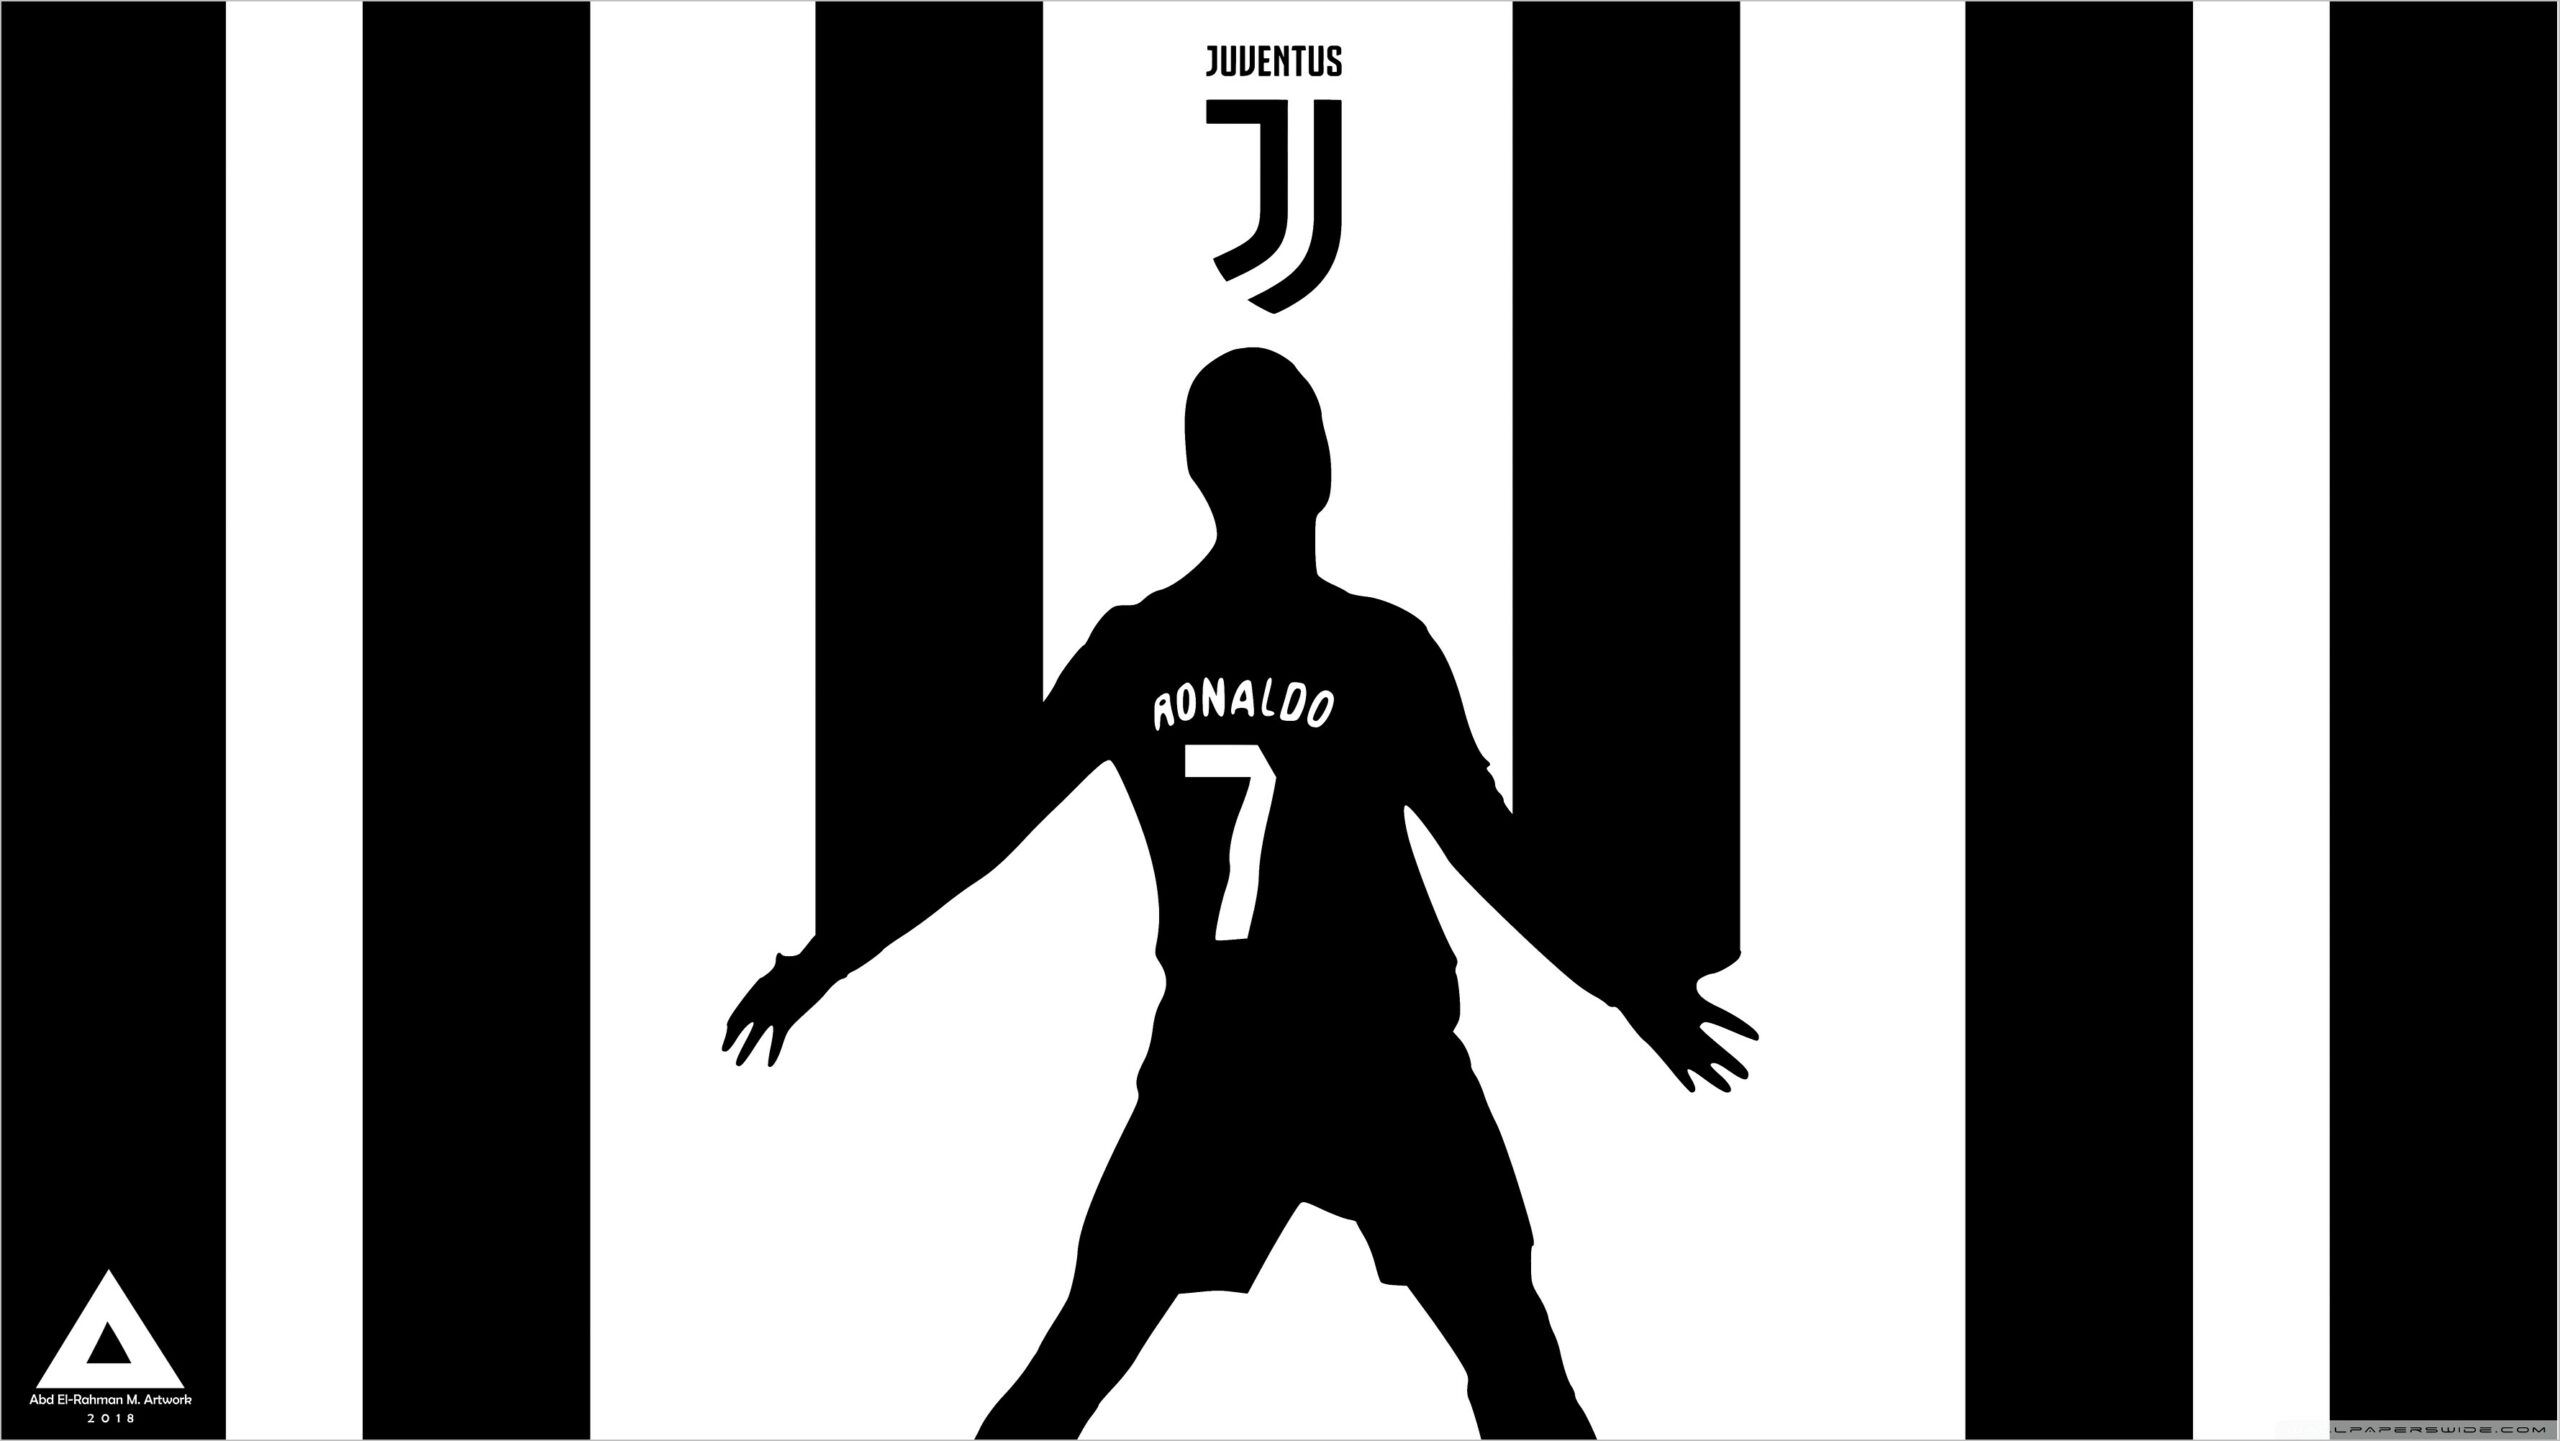 Cr7 4k Wallpaper Juventus Juventus Christiano Ronaldo Wallpaper